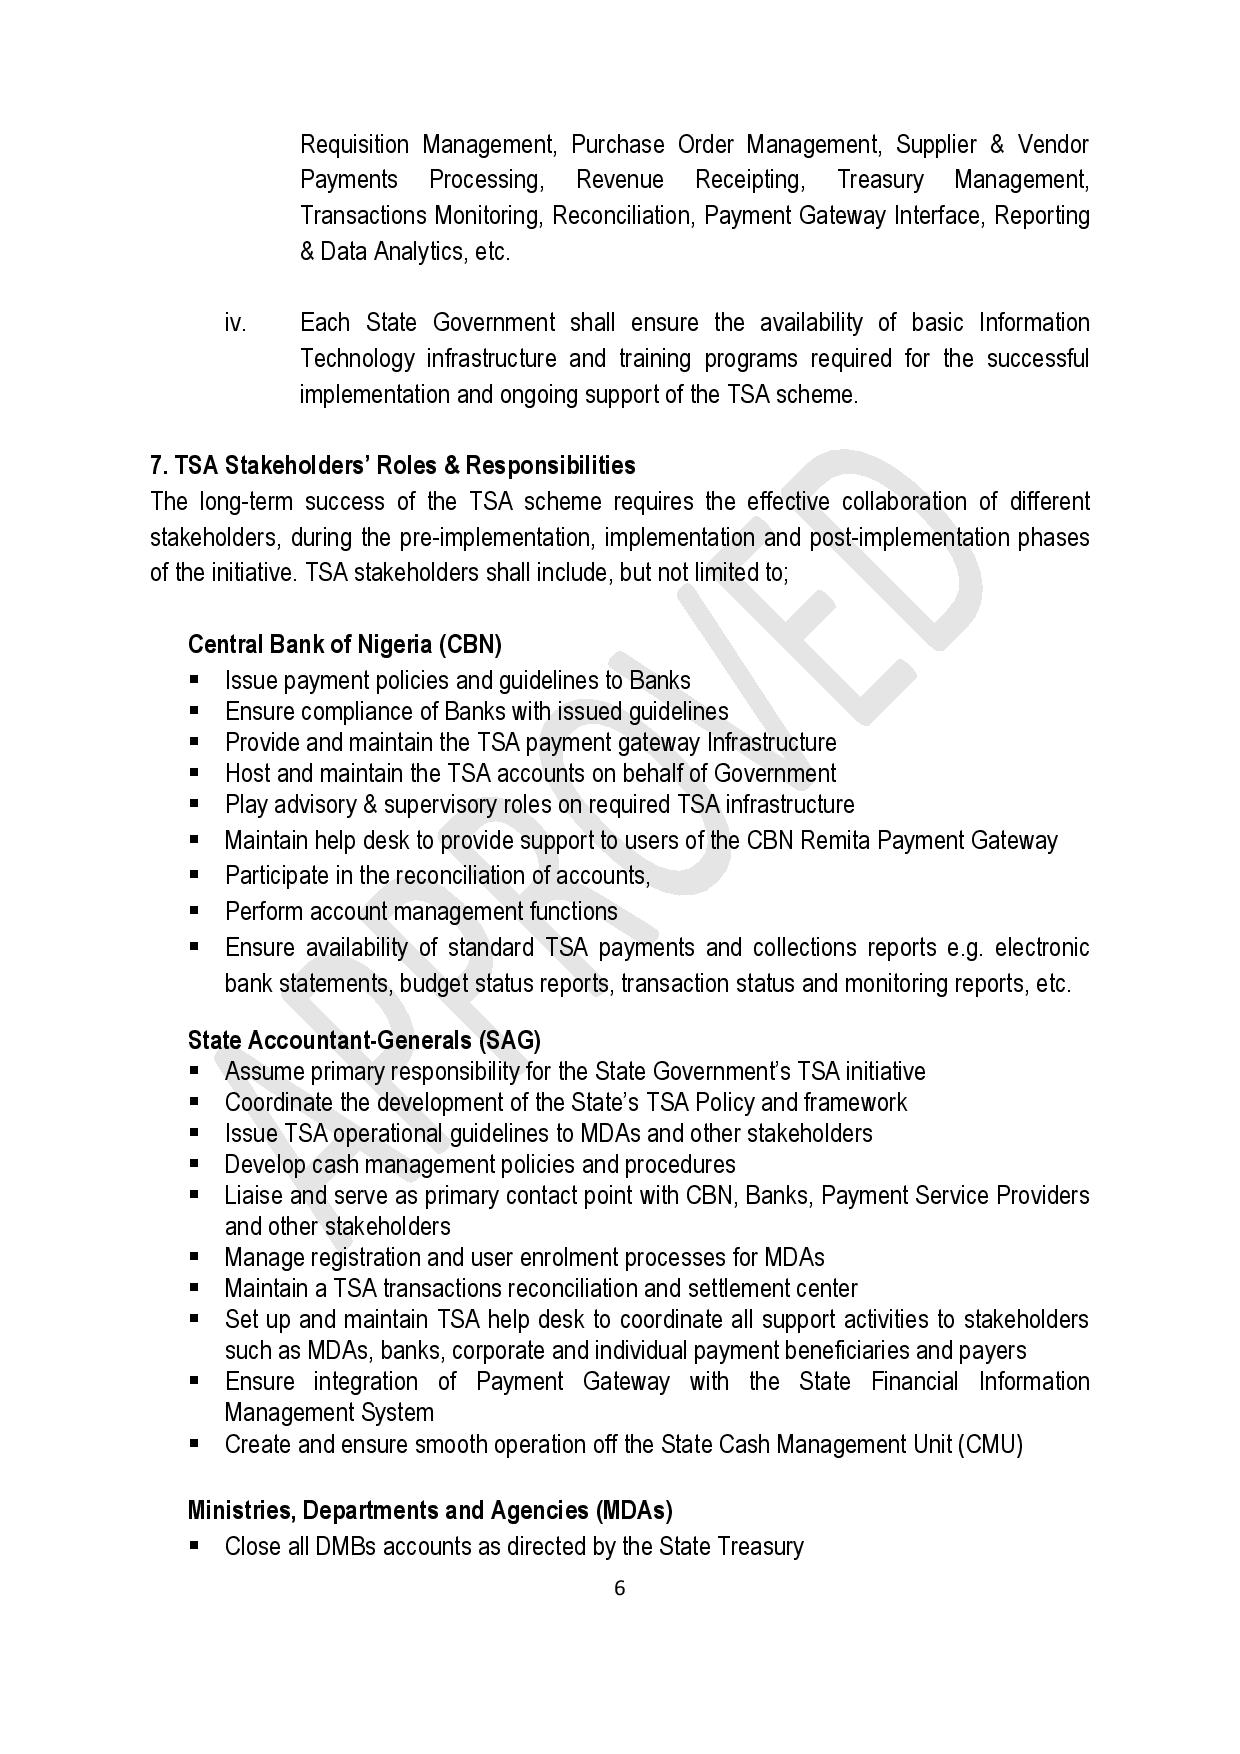 Guidelines for the Operations of TSA by State Governments in Nigeria-page-006